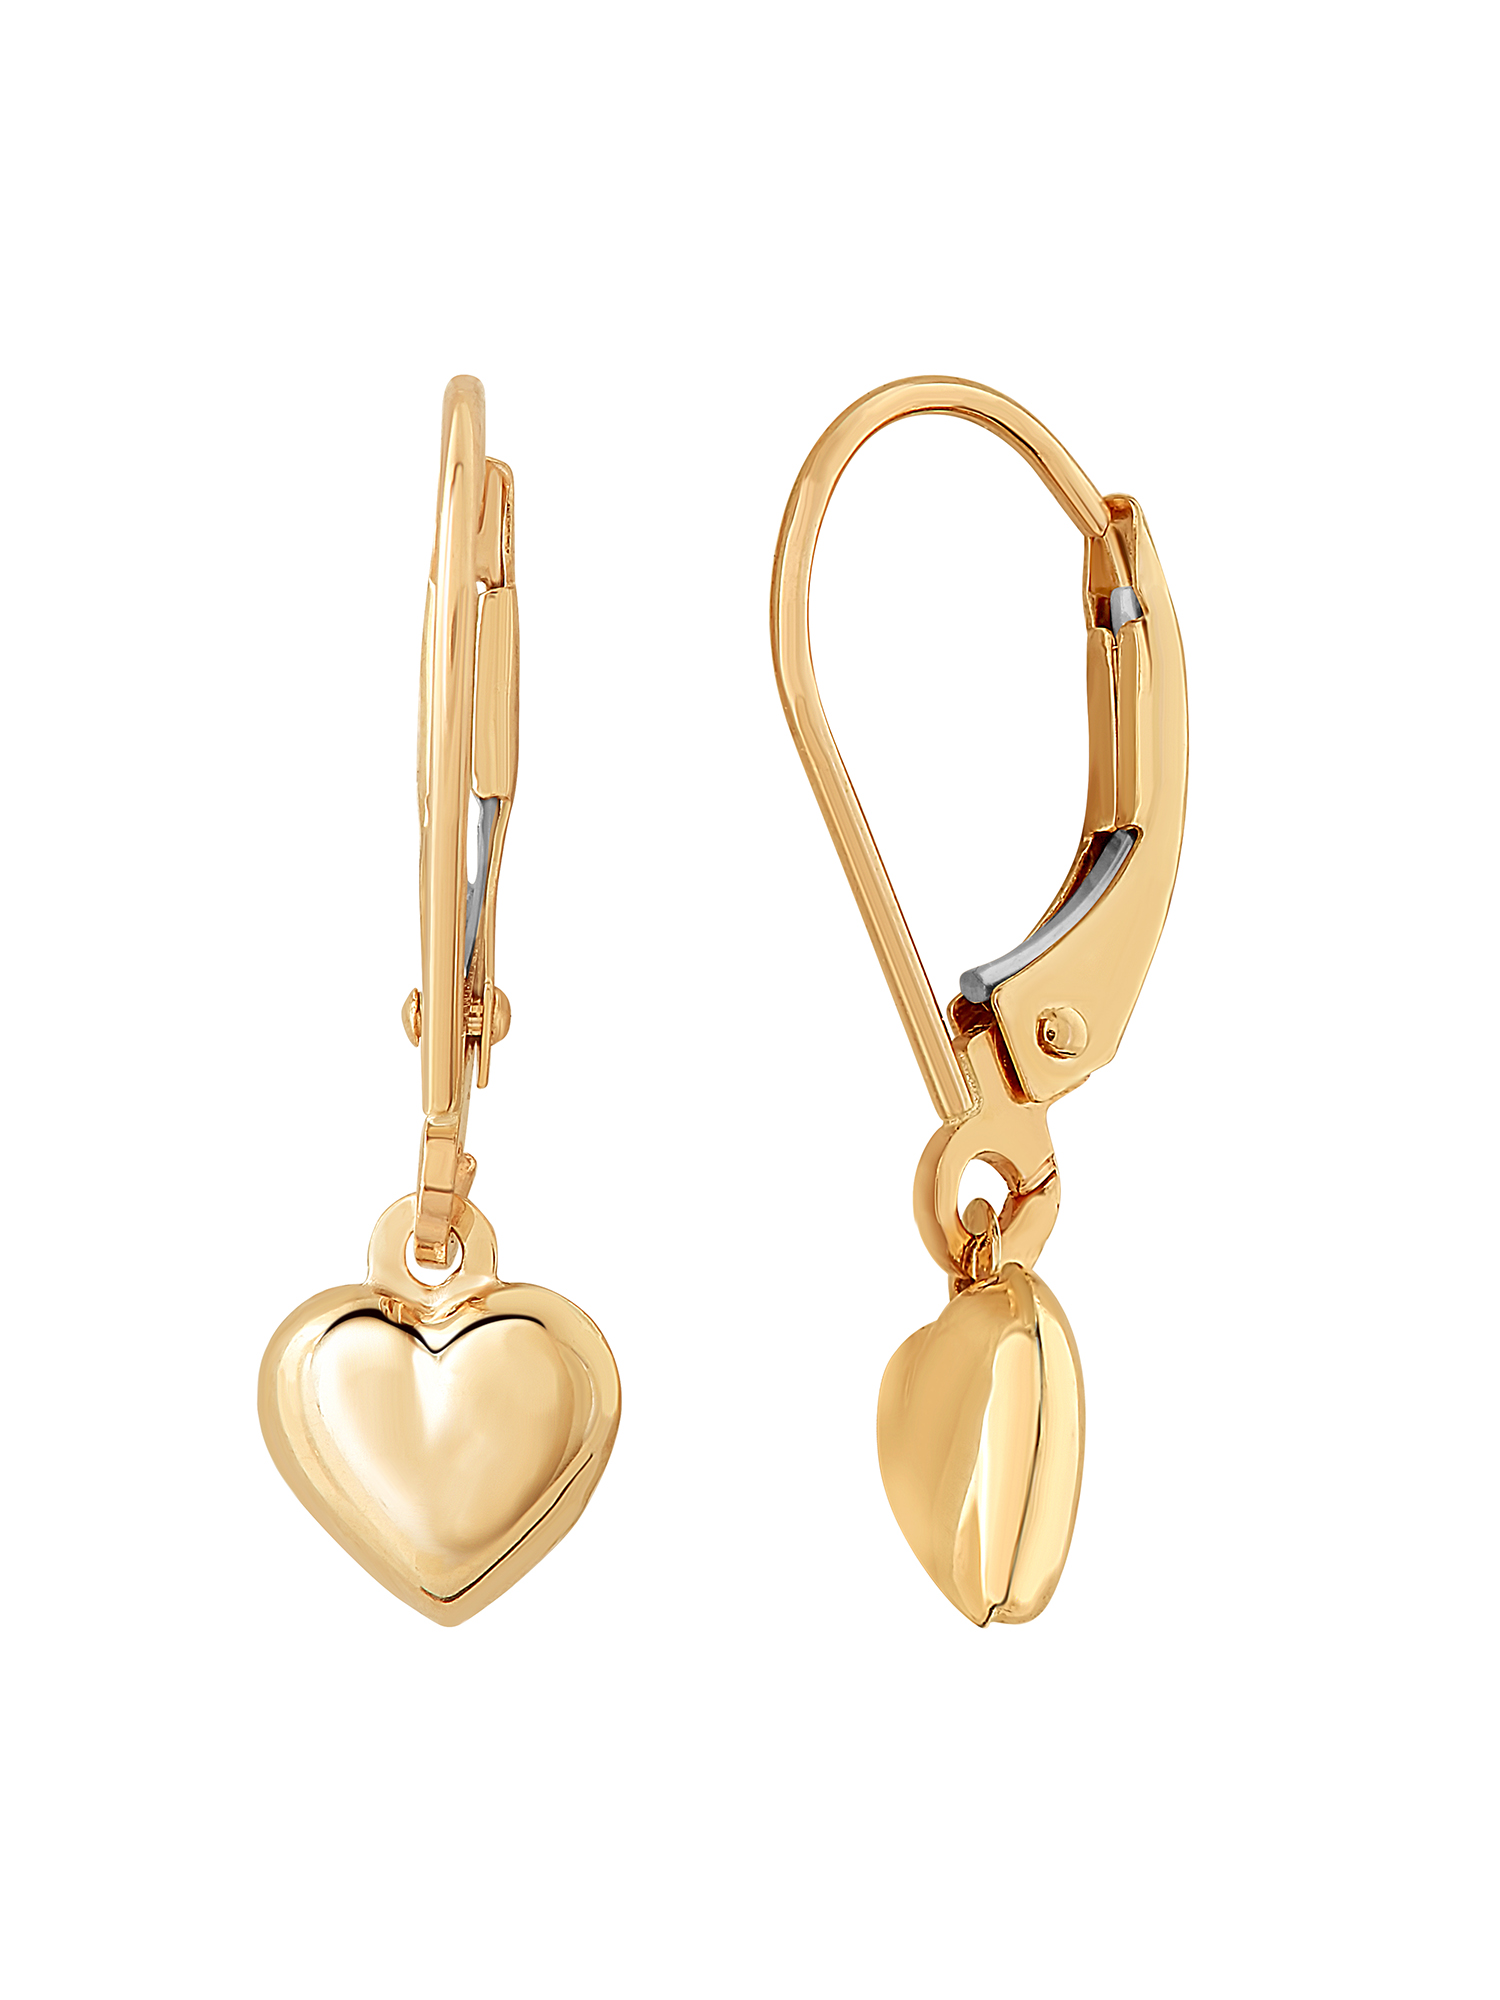 Simply Gold™ 10kt Yellow Gold Heart Earrings